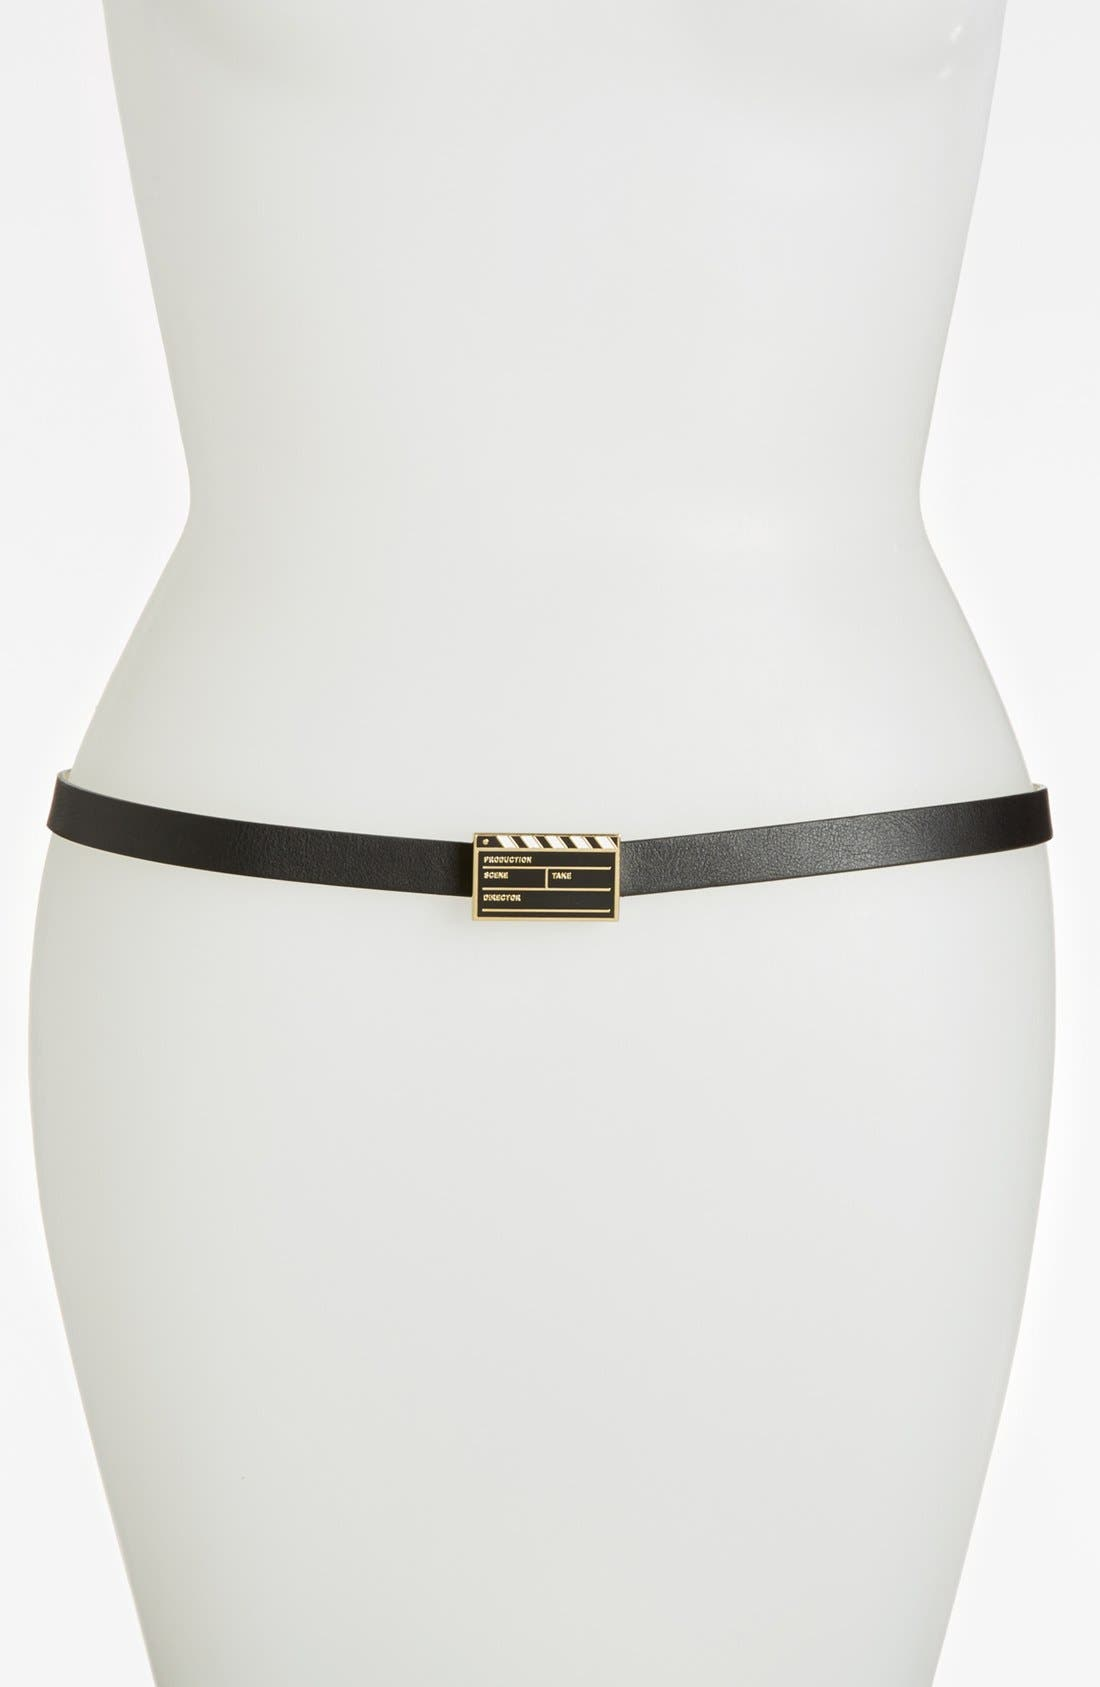 Alternate Image 1 Selected - kate spade new york 'movie' leather belt